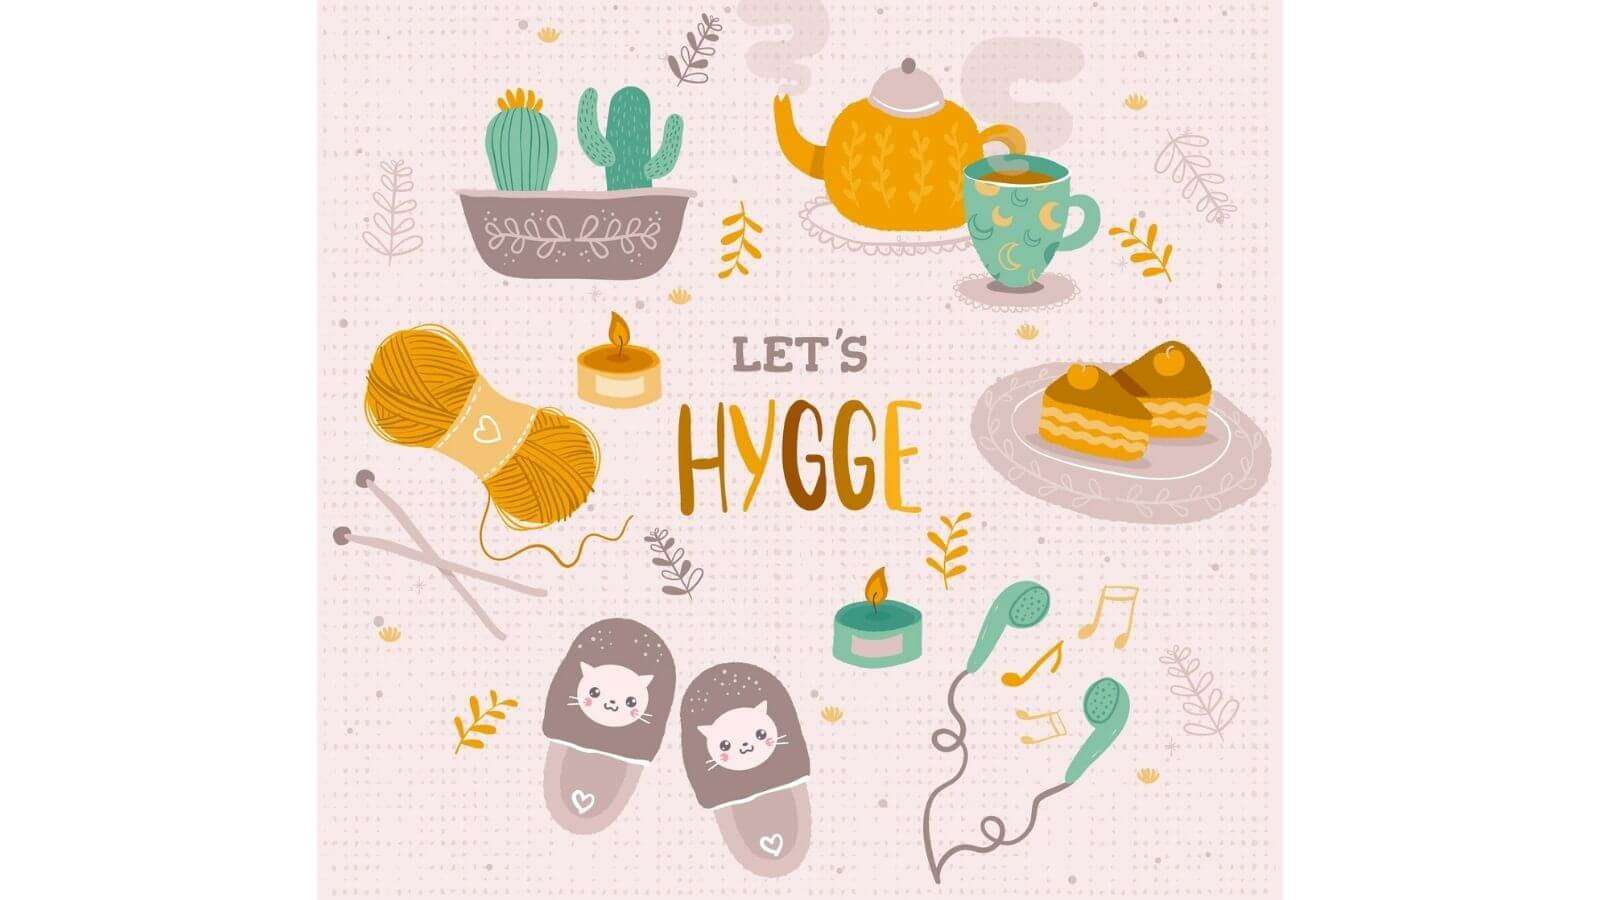 How to Embrace Nordic Hygge? 10 Cozy Life Ideas